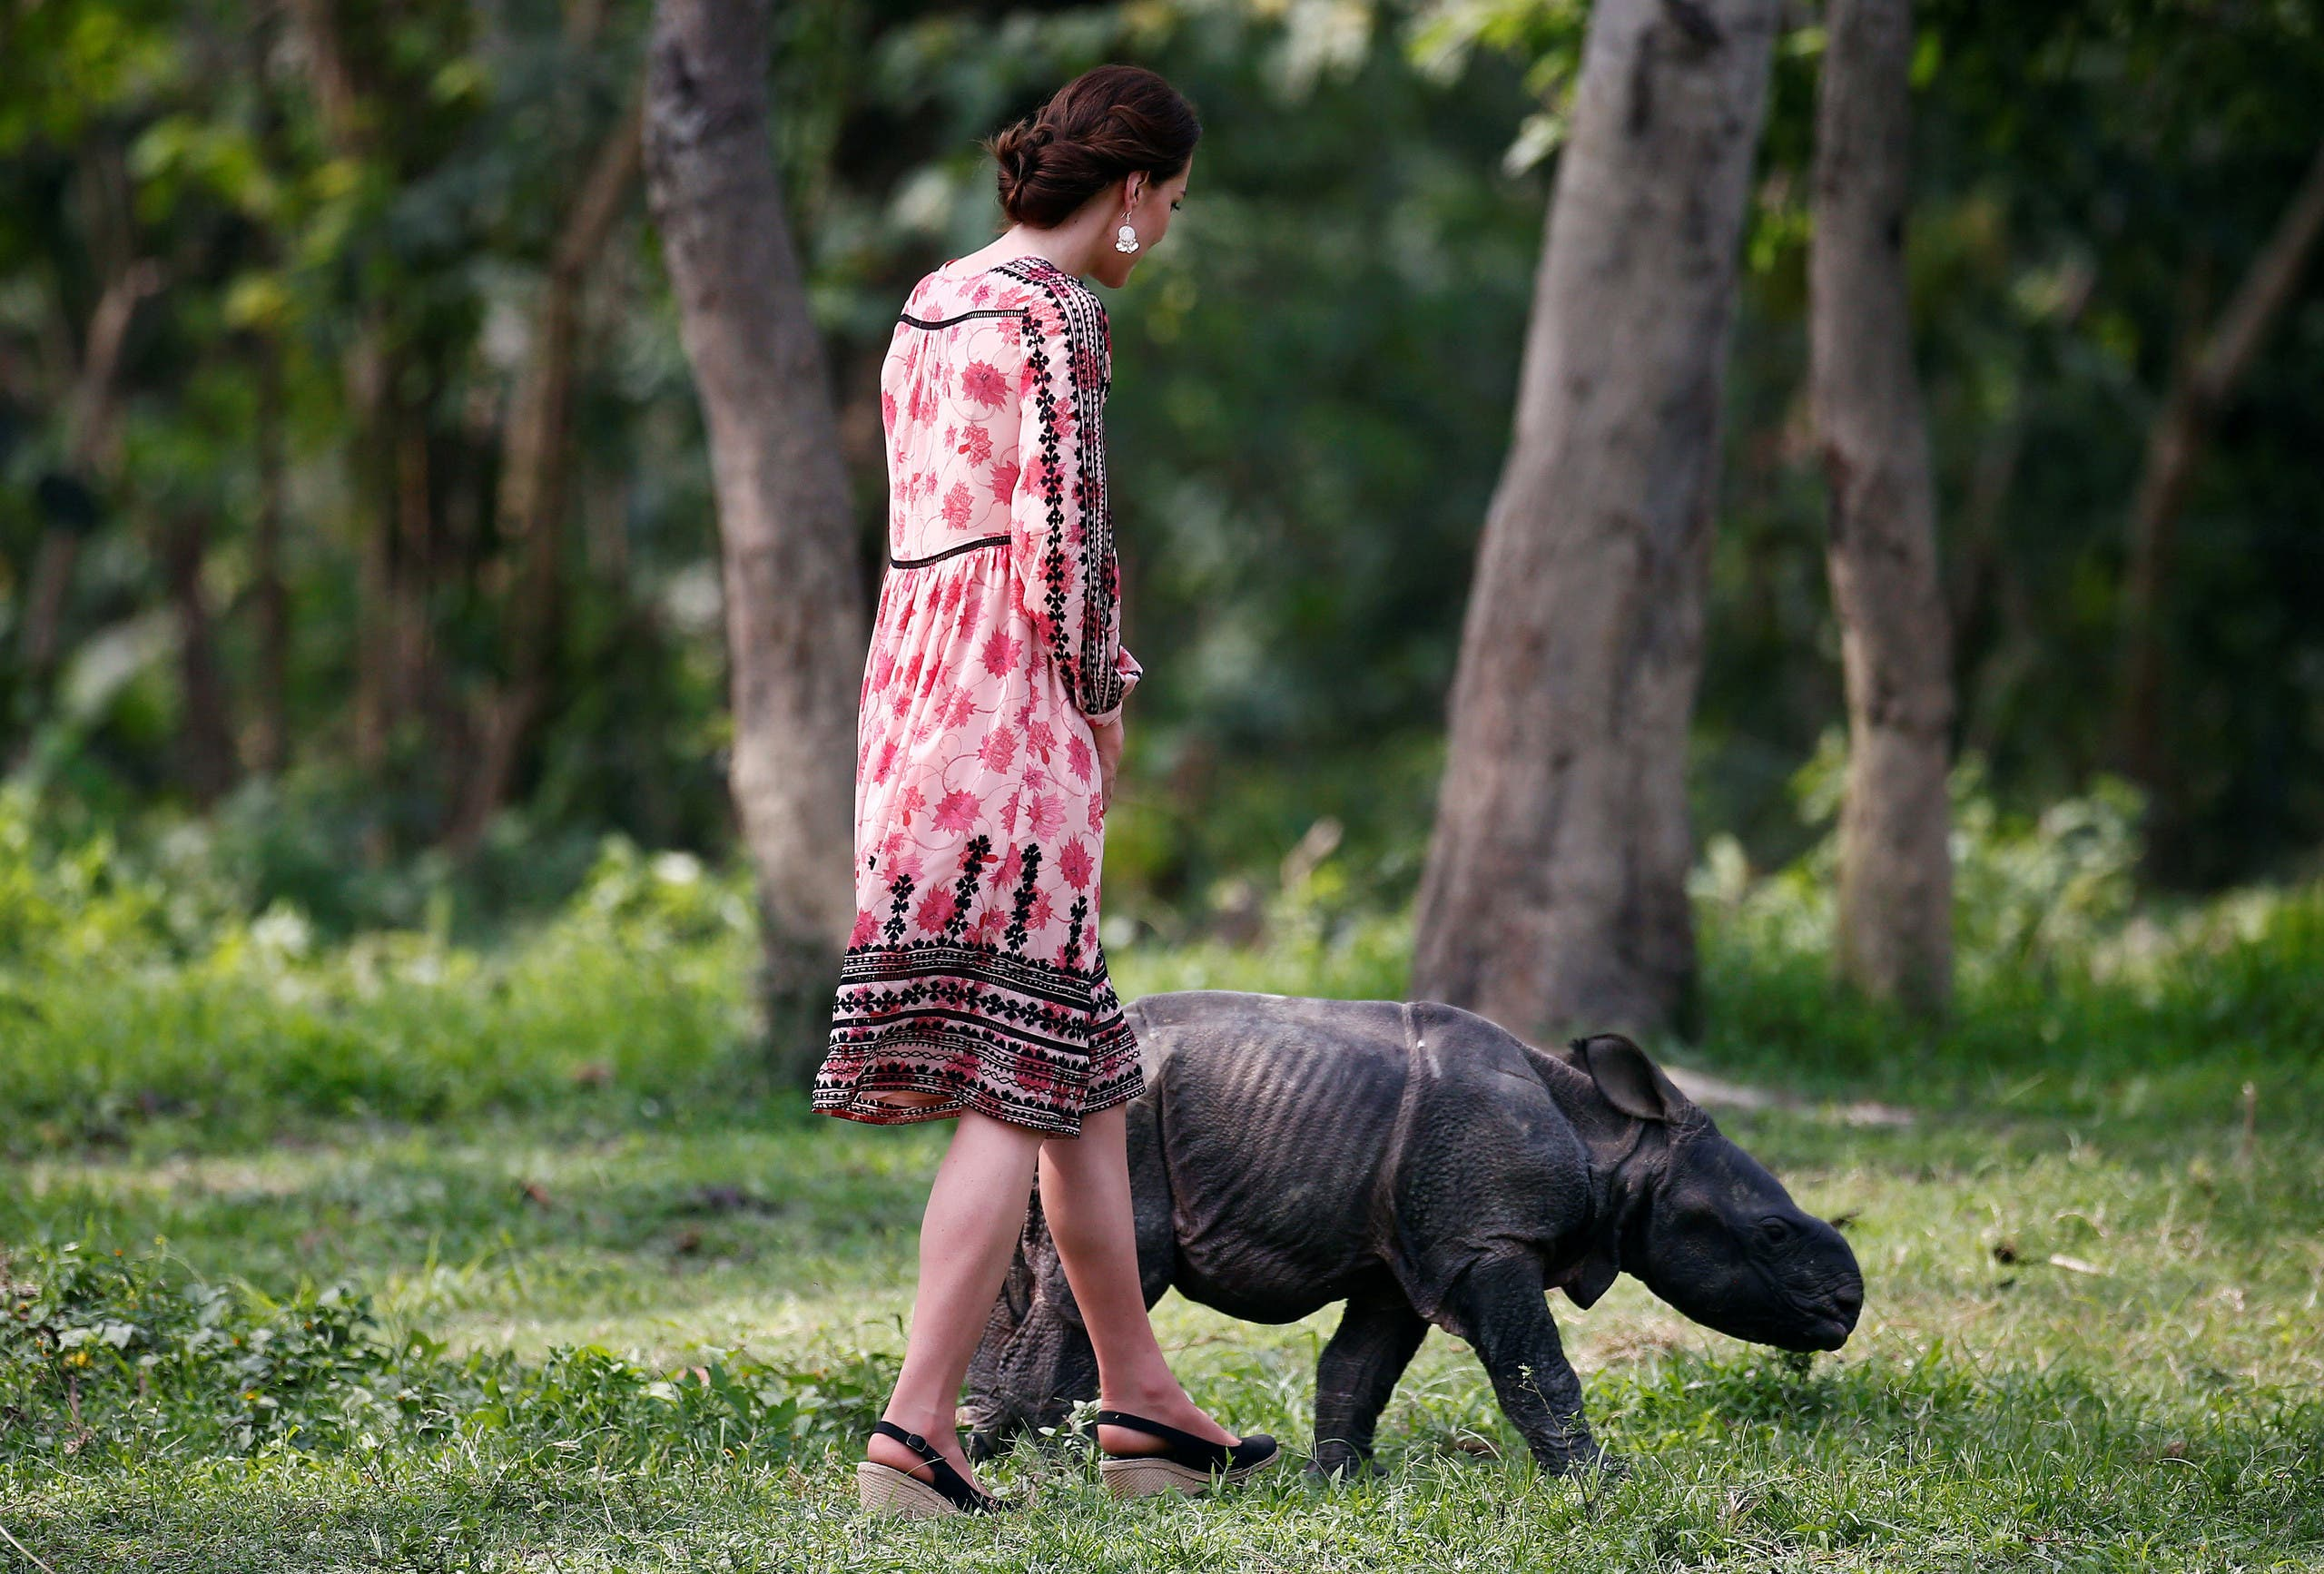 Prince William and Kate at India wildlife center